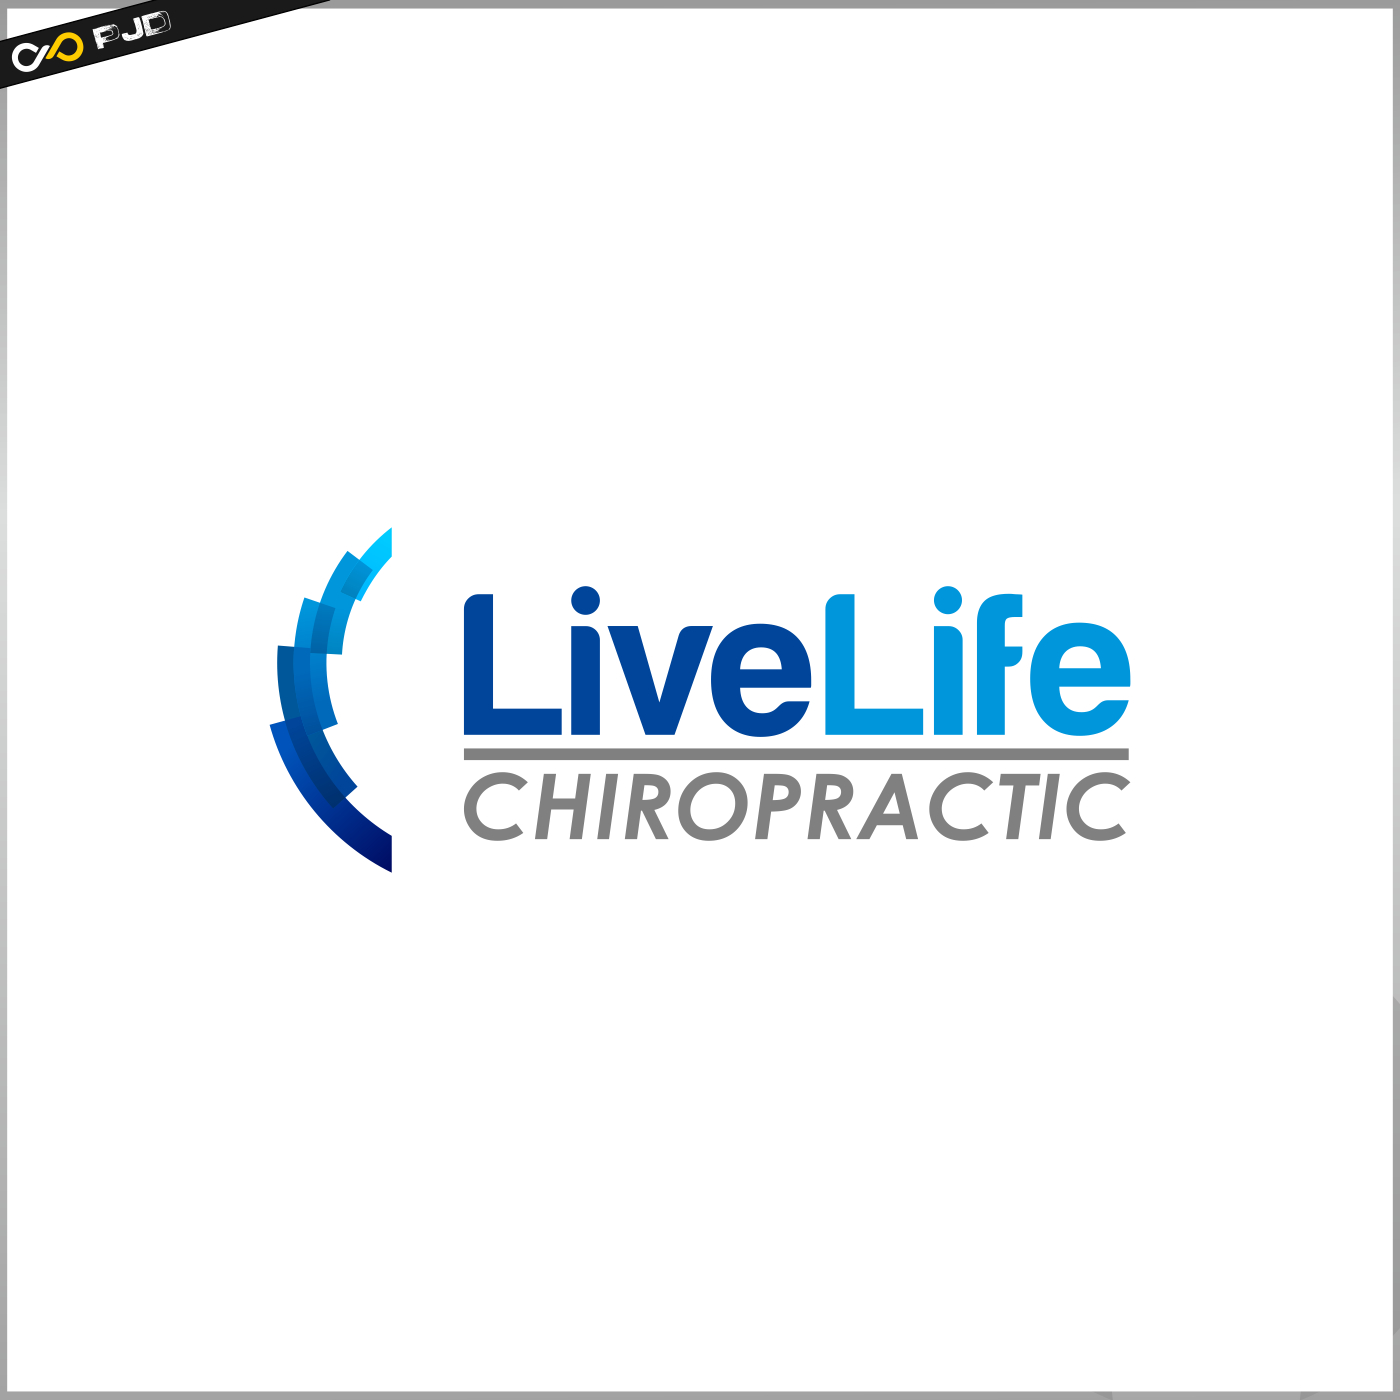 Logo Design by PJD - Entry No. 73 in the Logo Design Contest Captivating Logo Design for LiveLife Chiropractic.